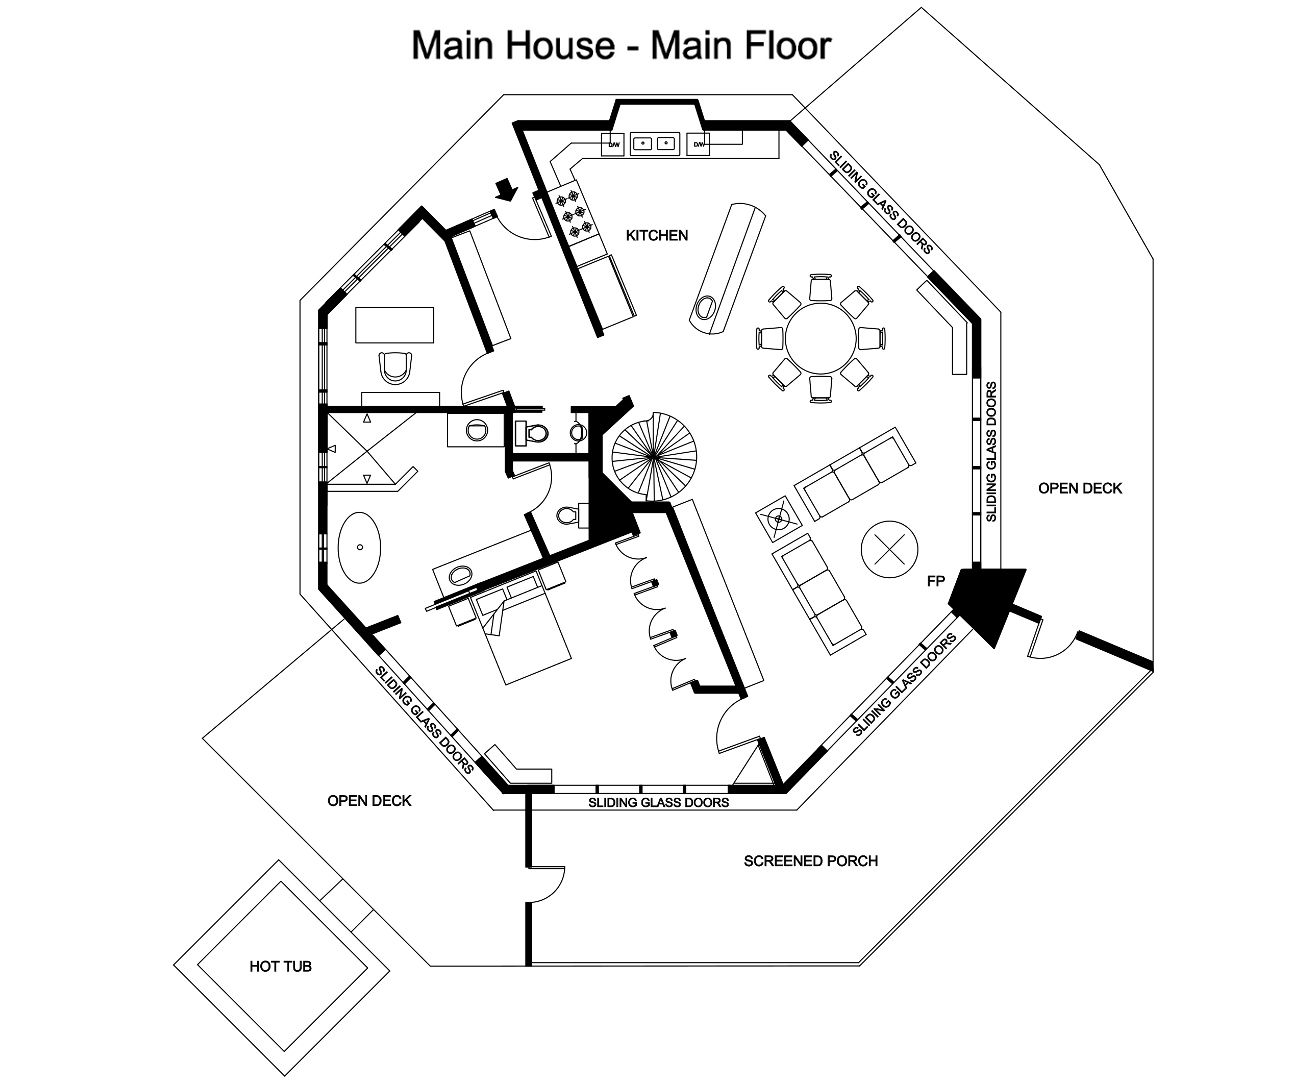 Octagon Shape House Plans Octagon House Plans Image Search Results ...